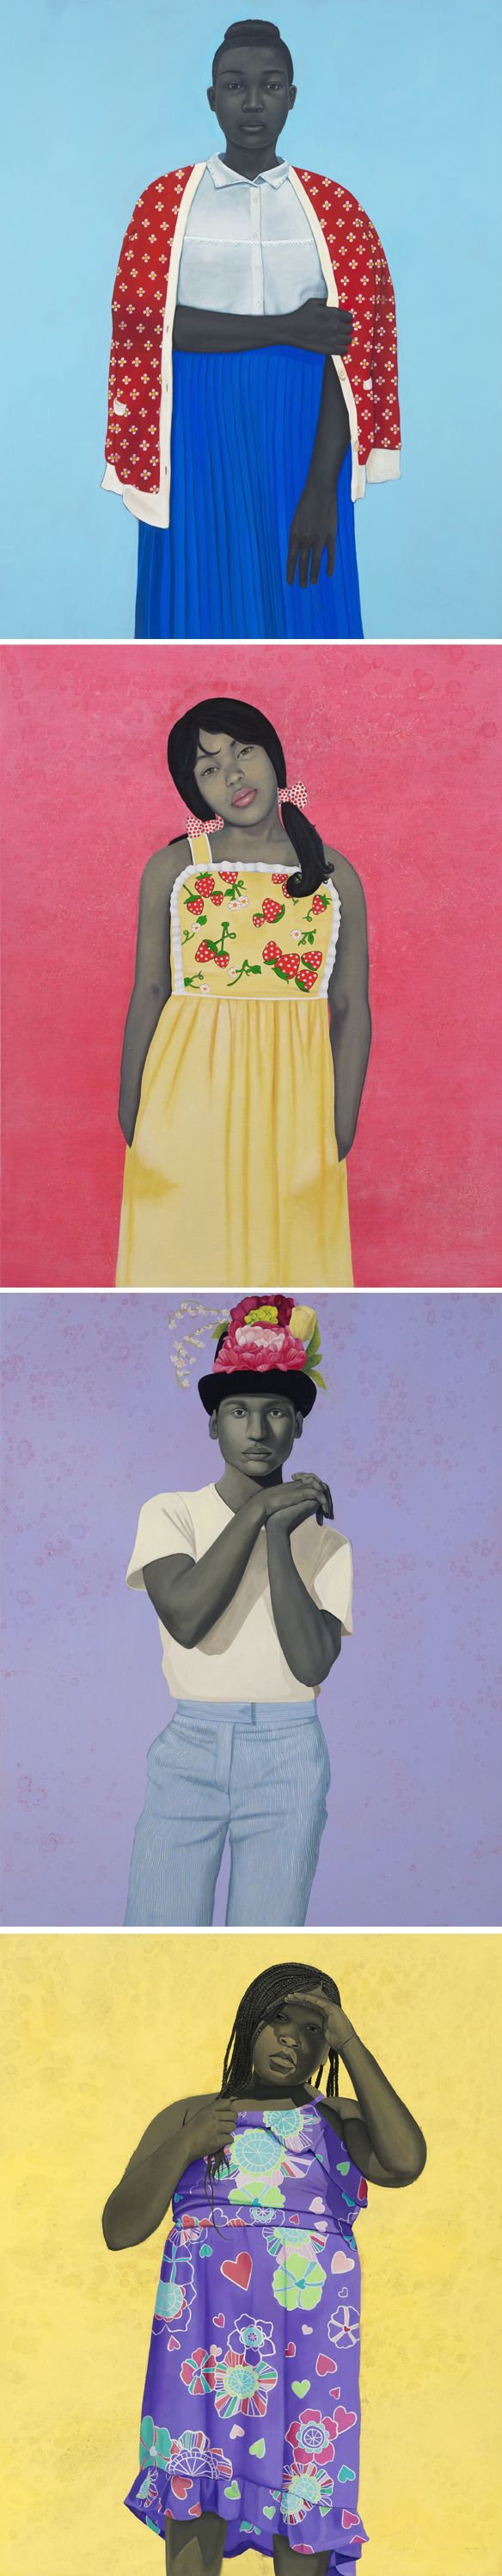 Paintings by #AmySherald